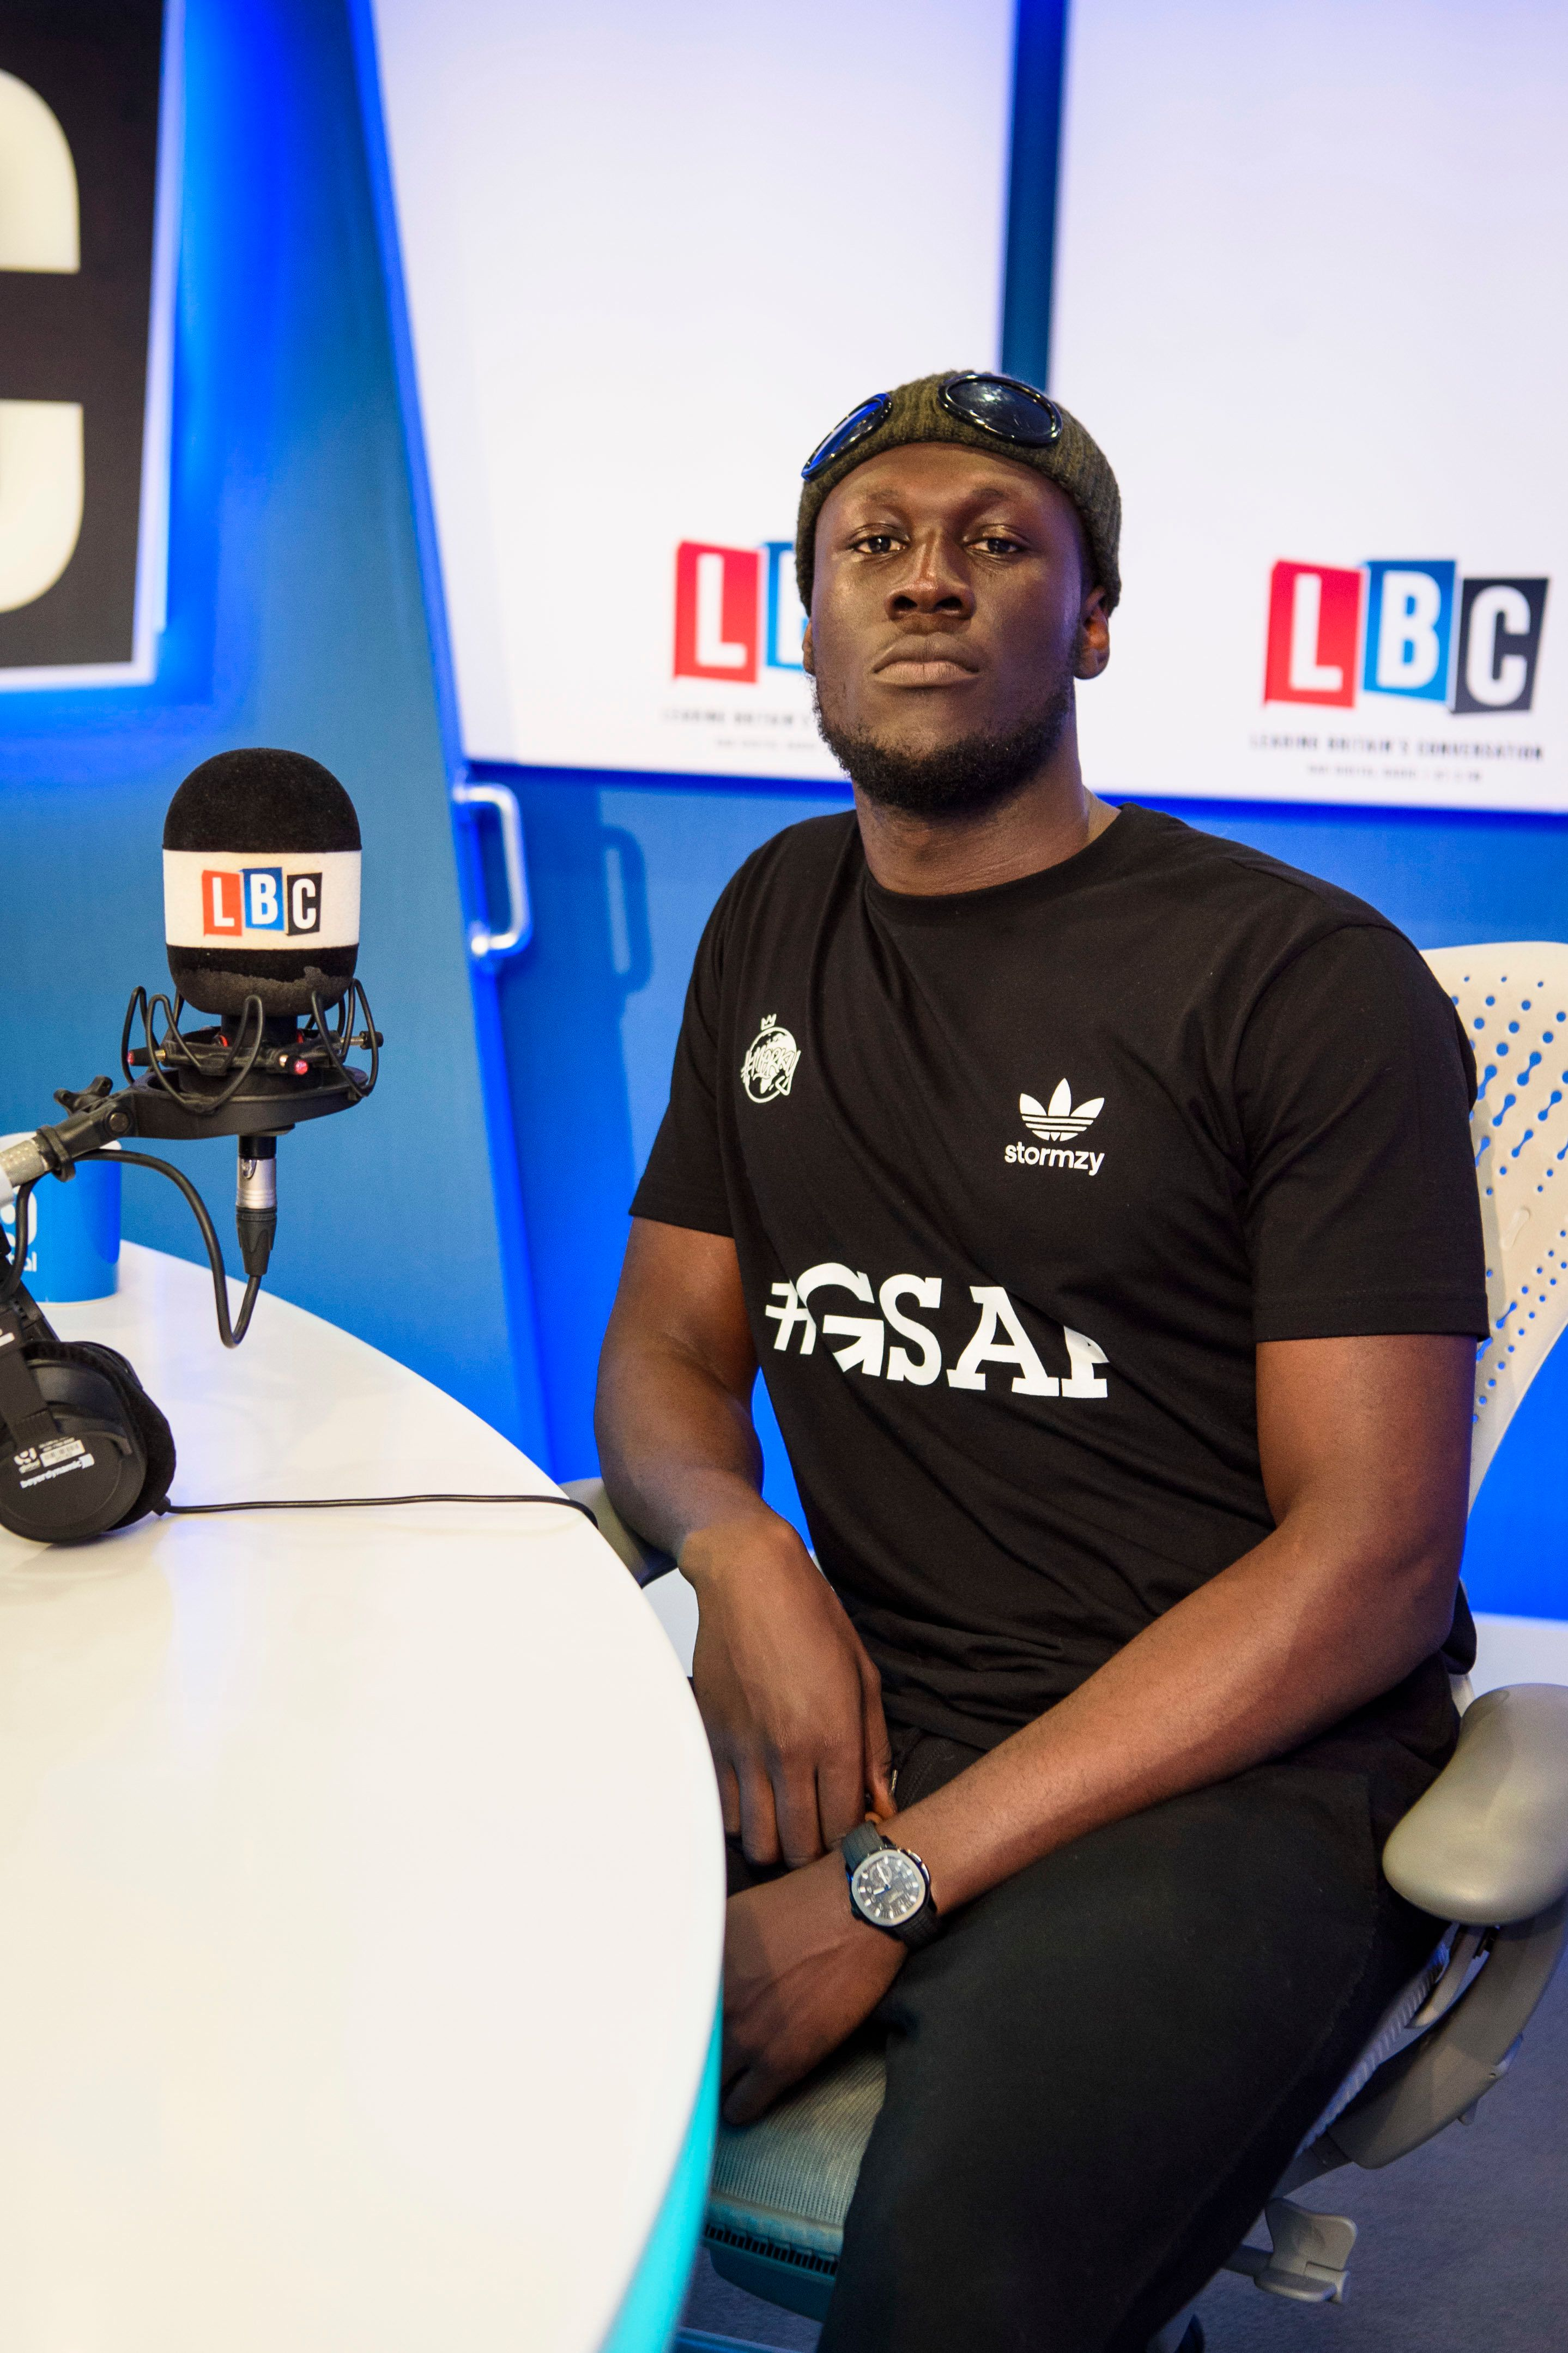 Stormzy Defends Grime In Triumphant LBC Appearance, After Criticising The Station On His